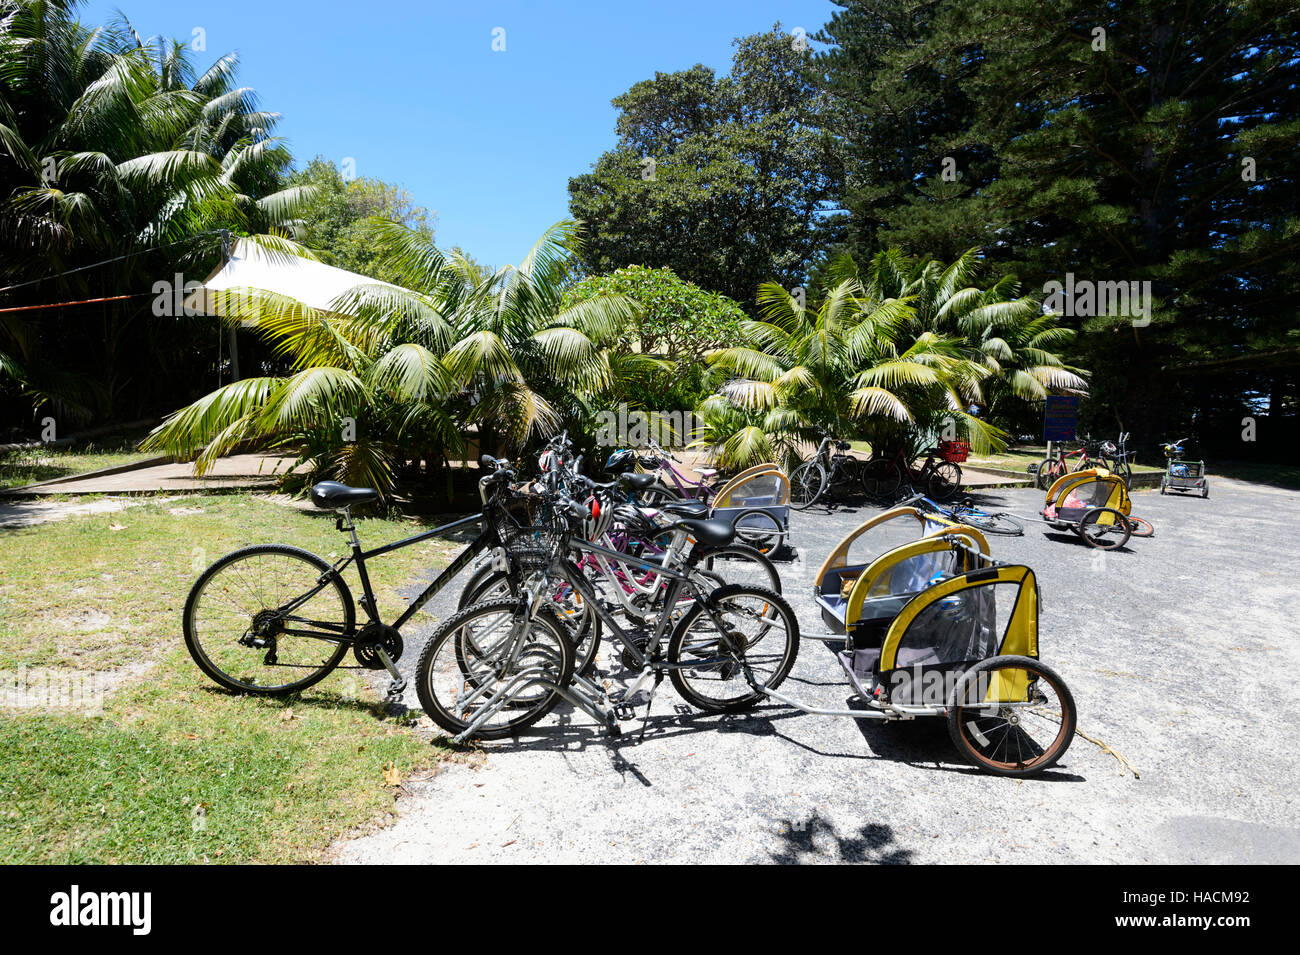 Bicycles commonly used on Lord Howe Island, as an eco-friendly way of transport, New South Wales, NSW, Australia - Stock Image